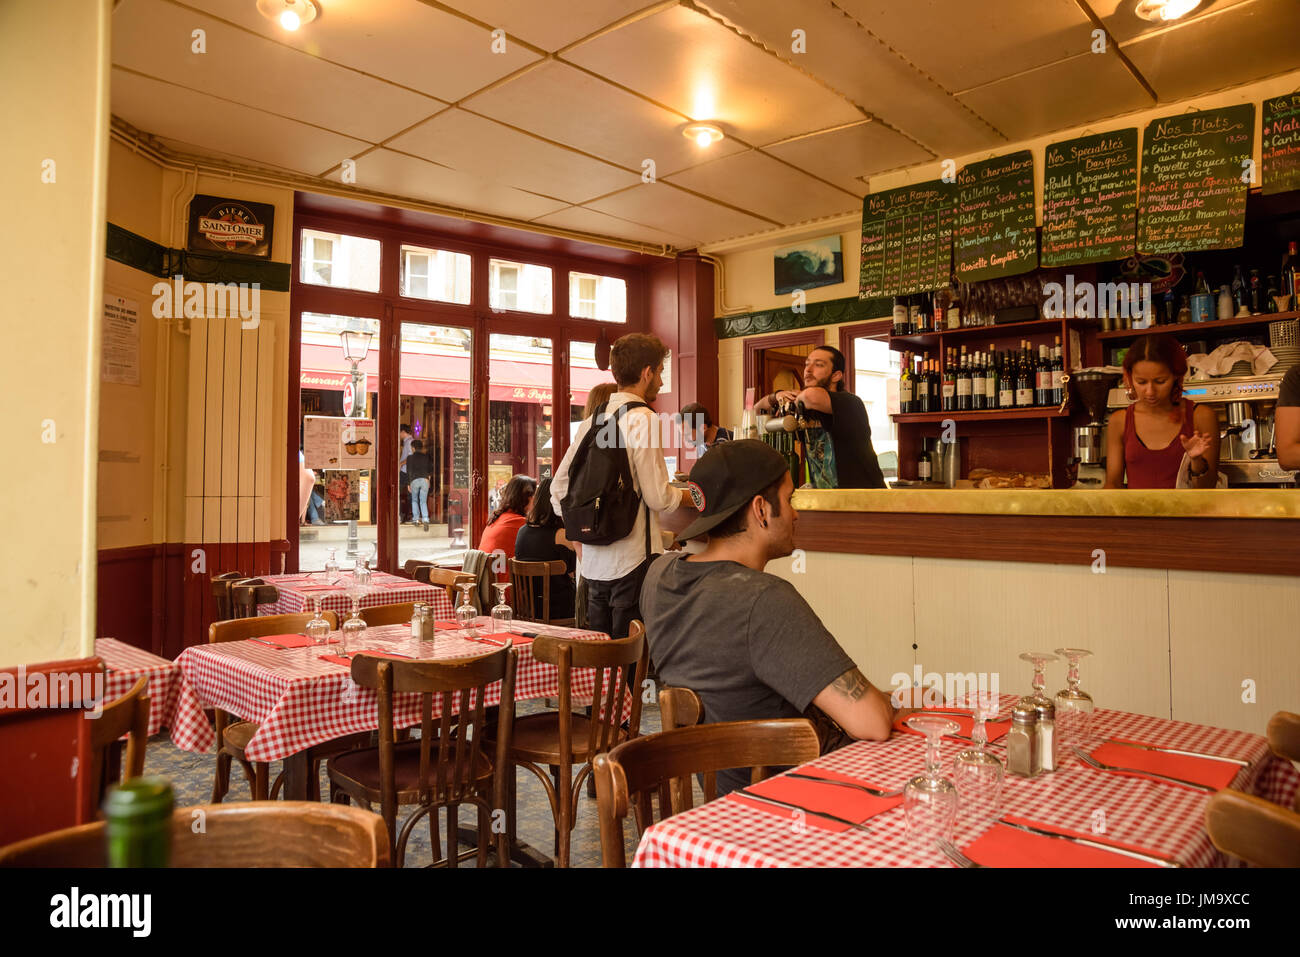 Baskisches stock photos baskisches stock images alamy - Restaurant buttes aux cailles ...